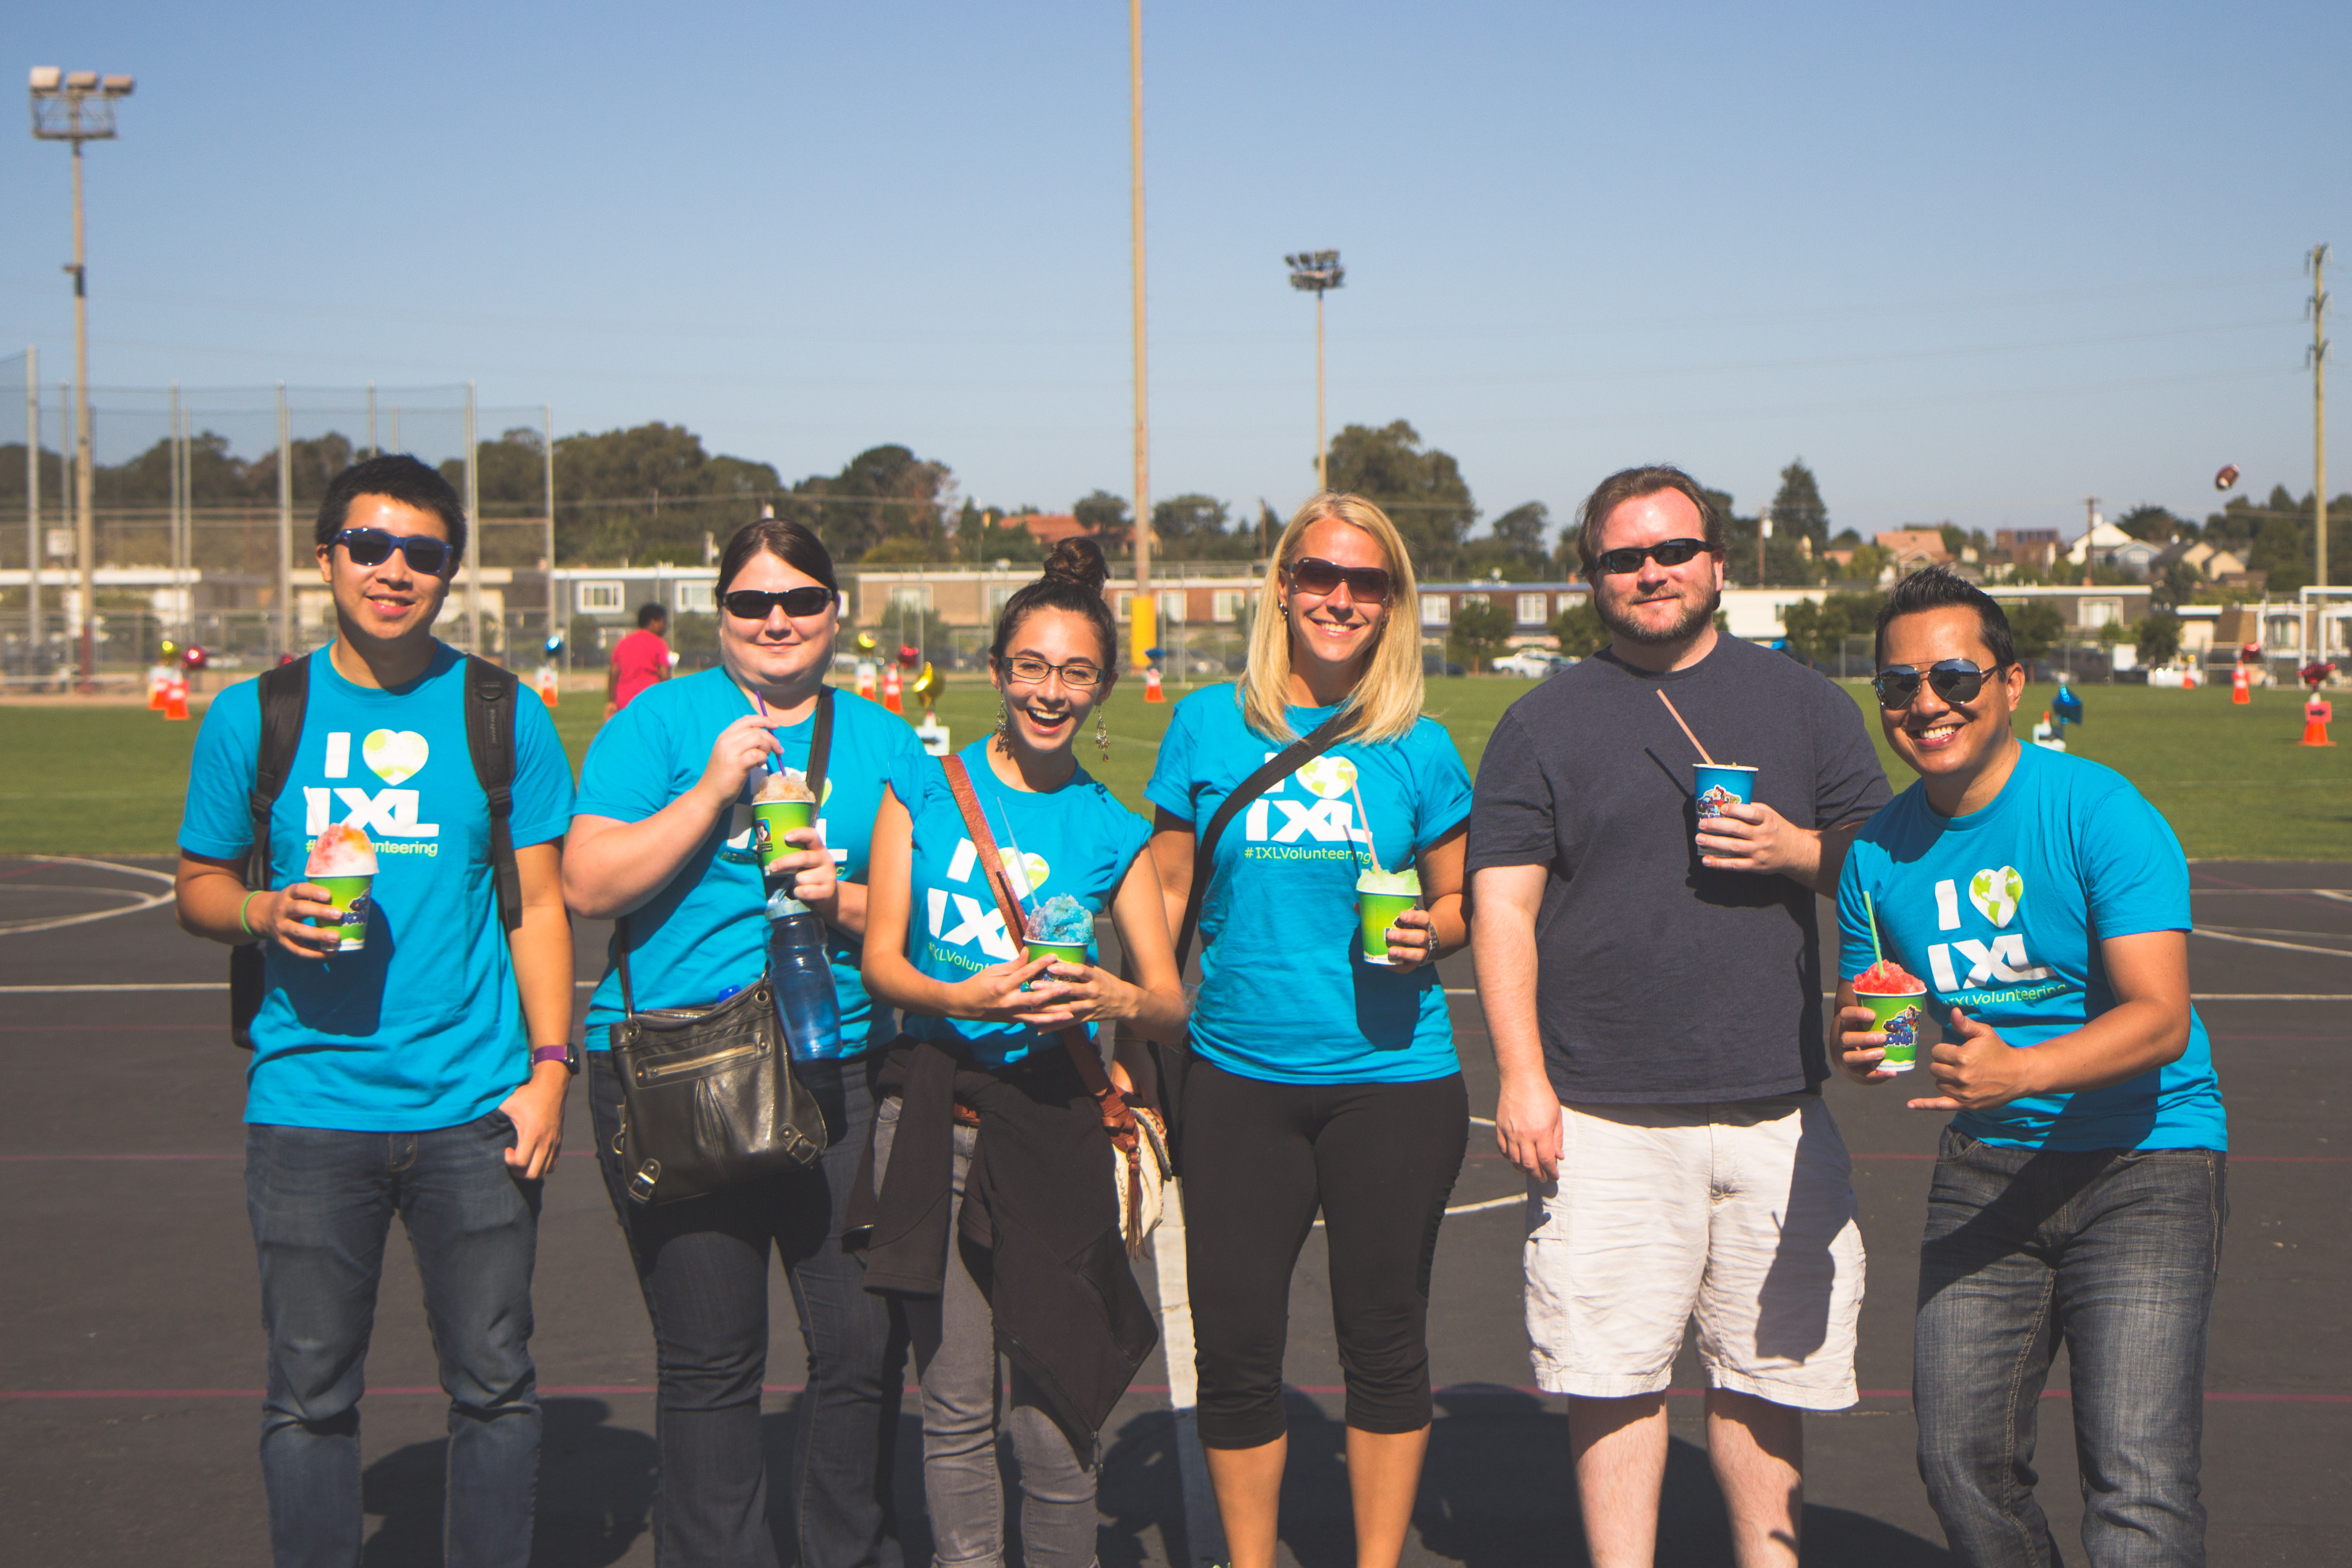 IXL Volunteering: Supporting a School District Walk-a-Thon